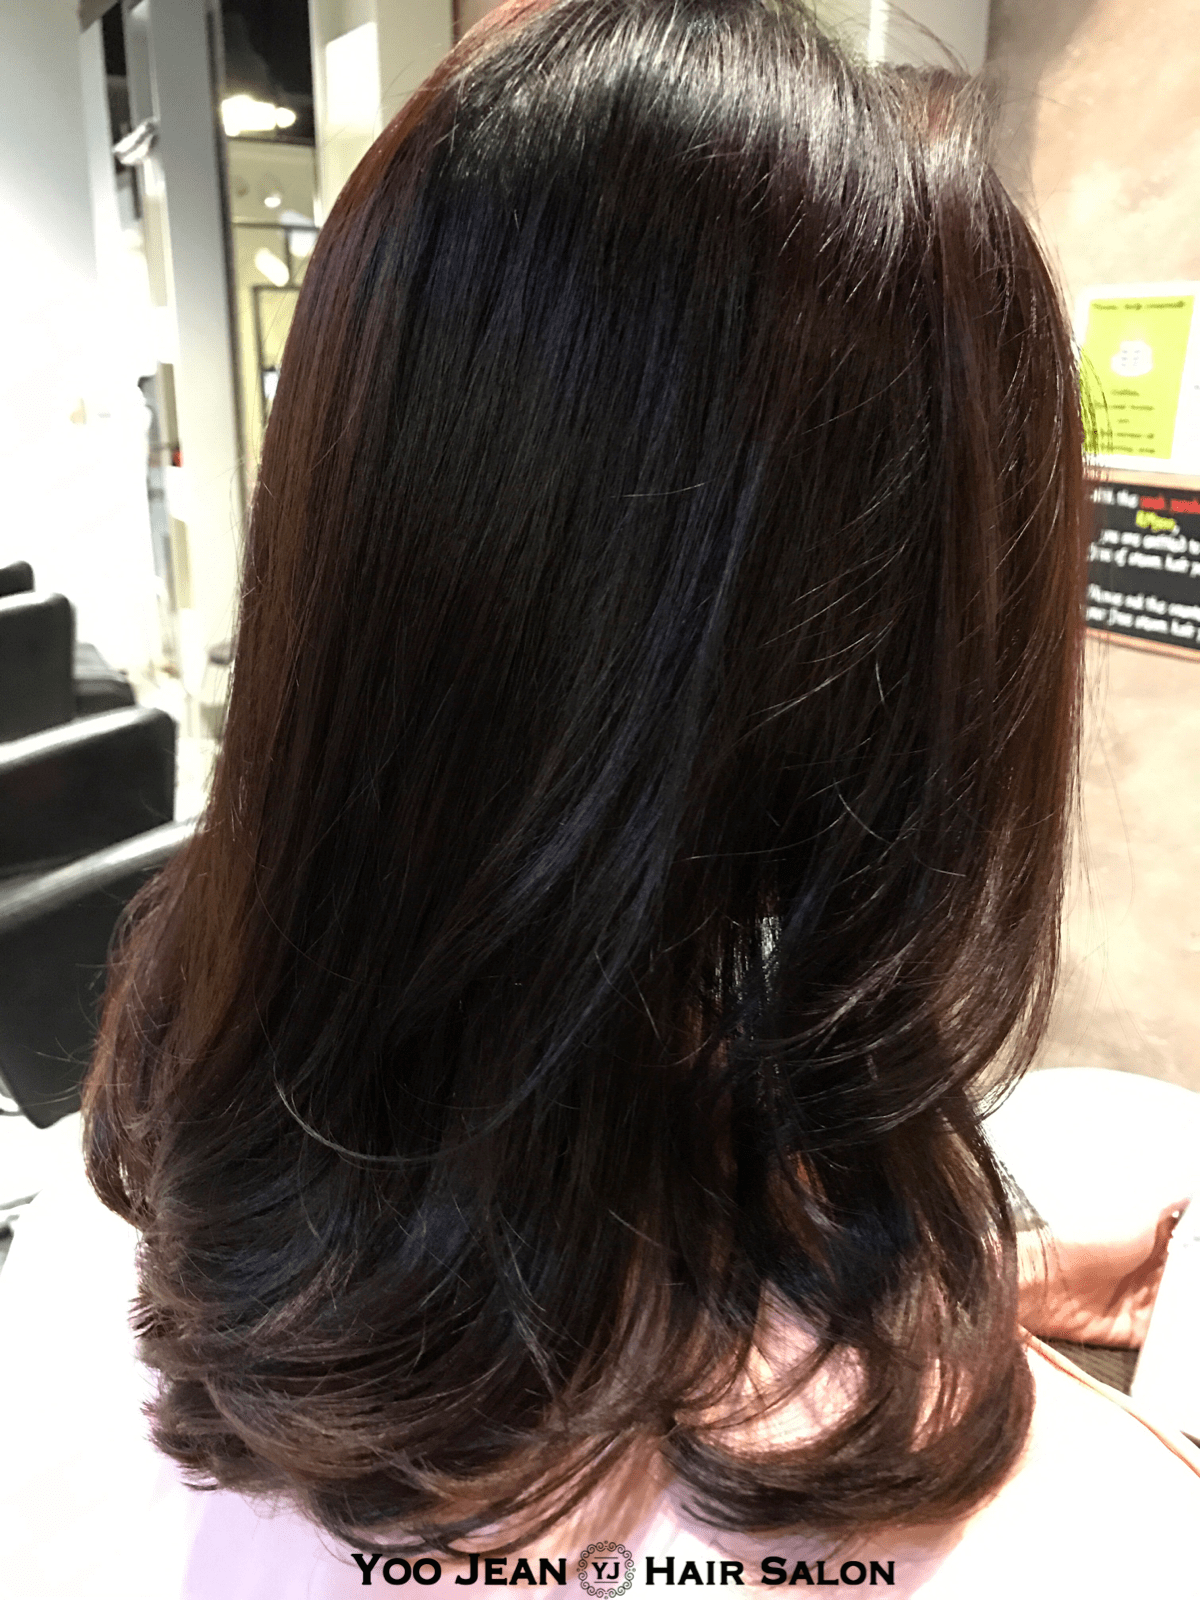 Medium Perm Style Yoo Jeans Hair Salon Korean Hair